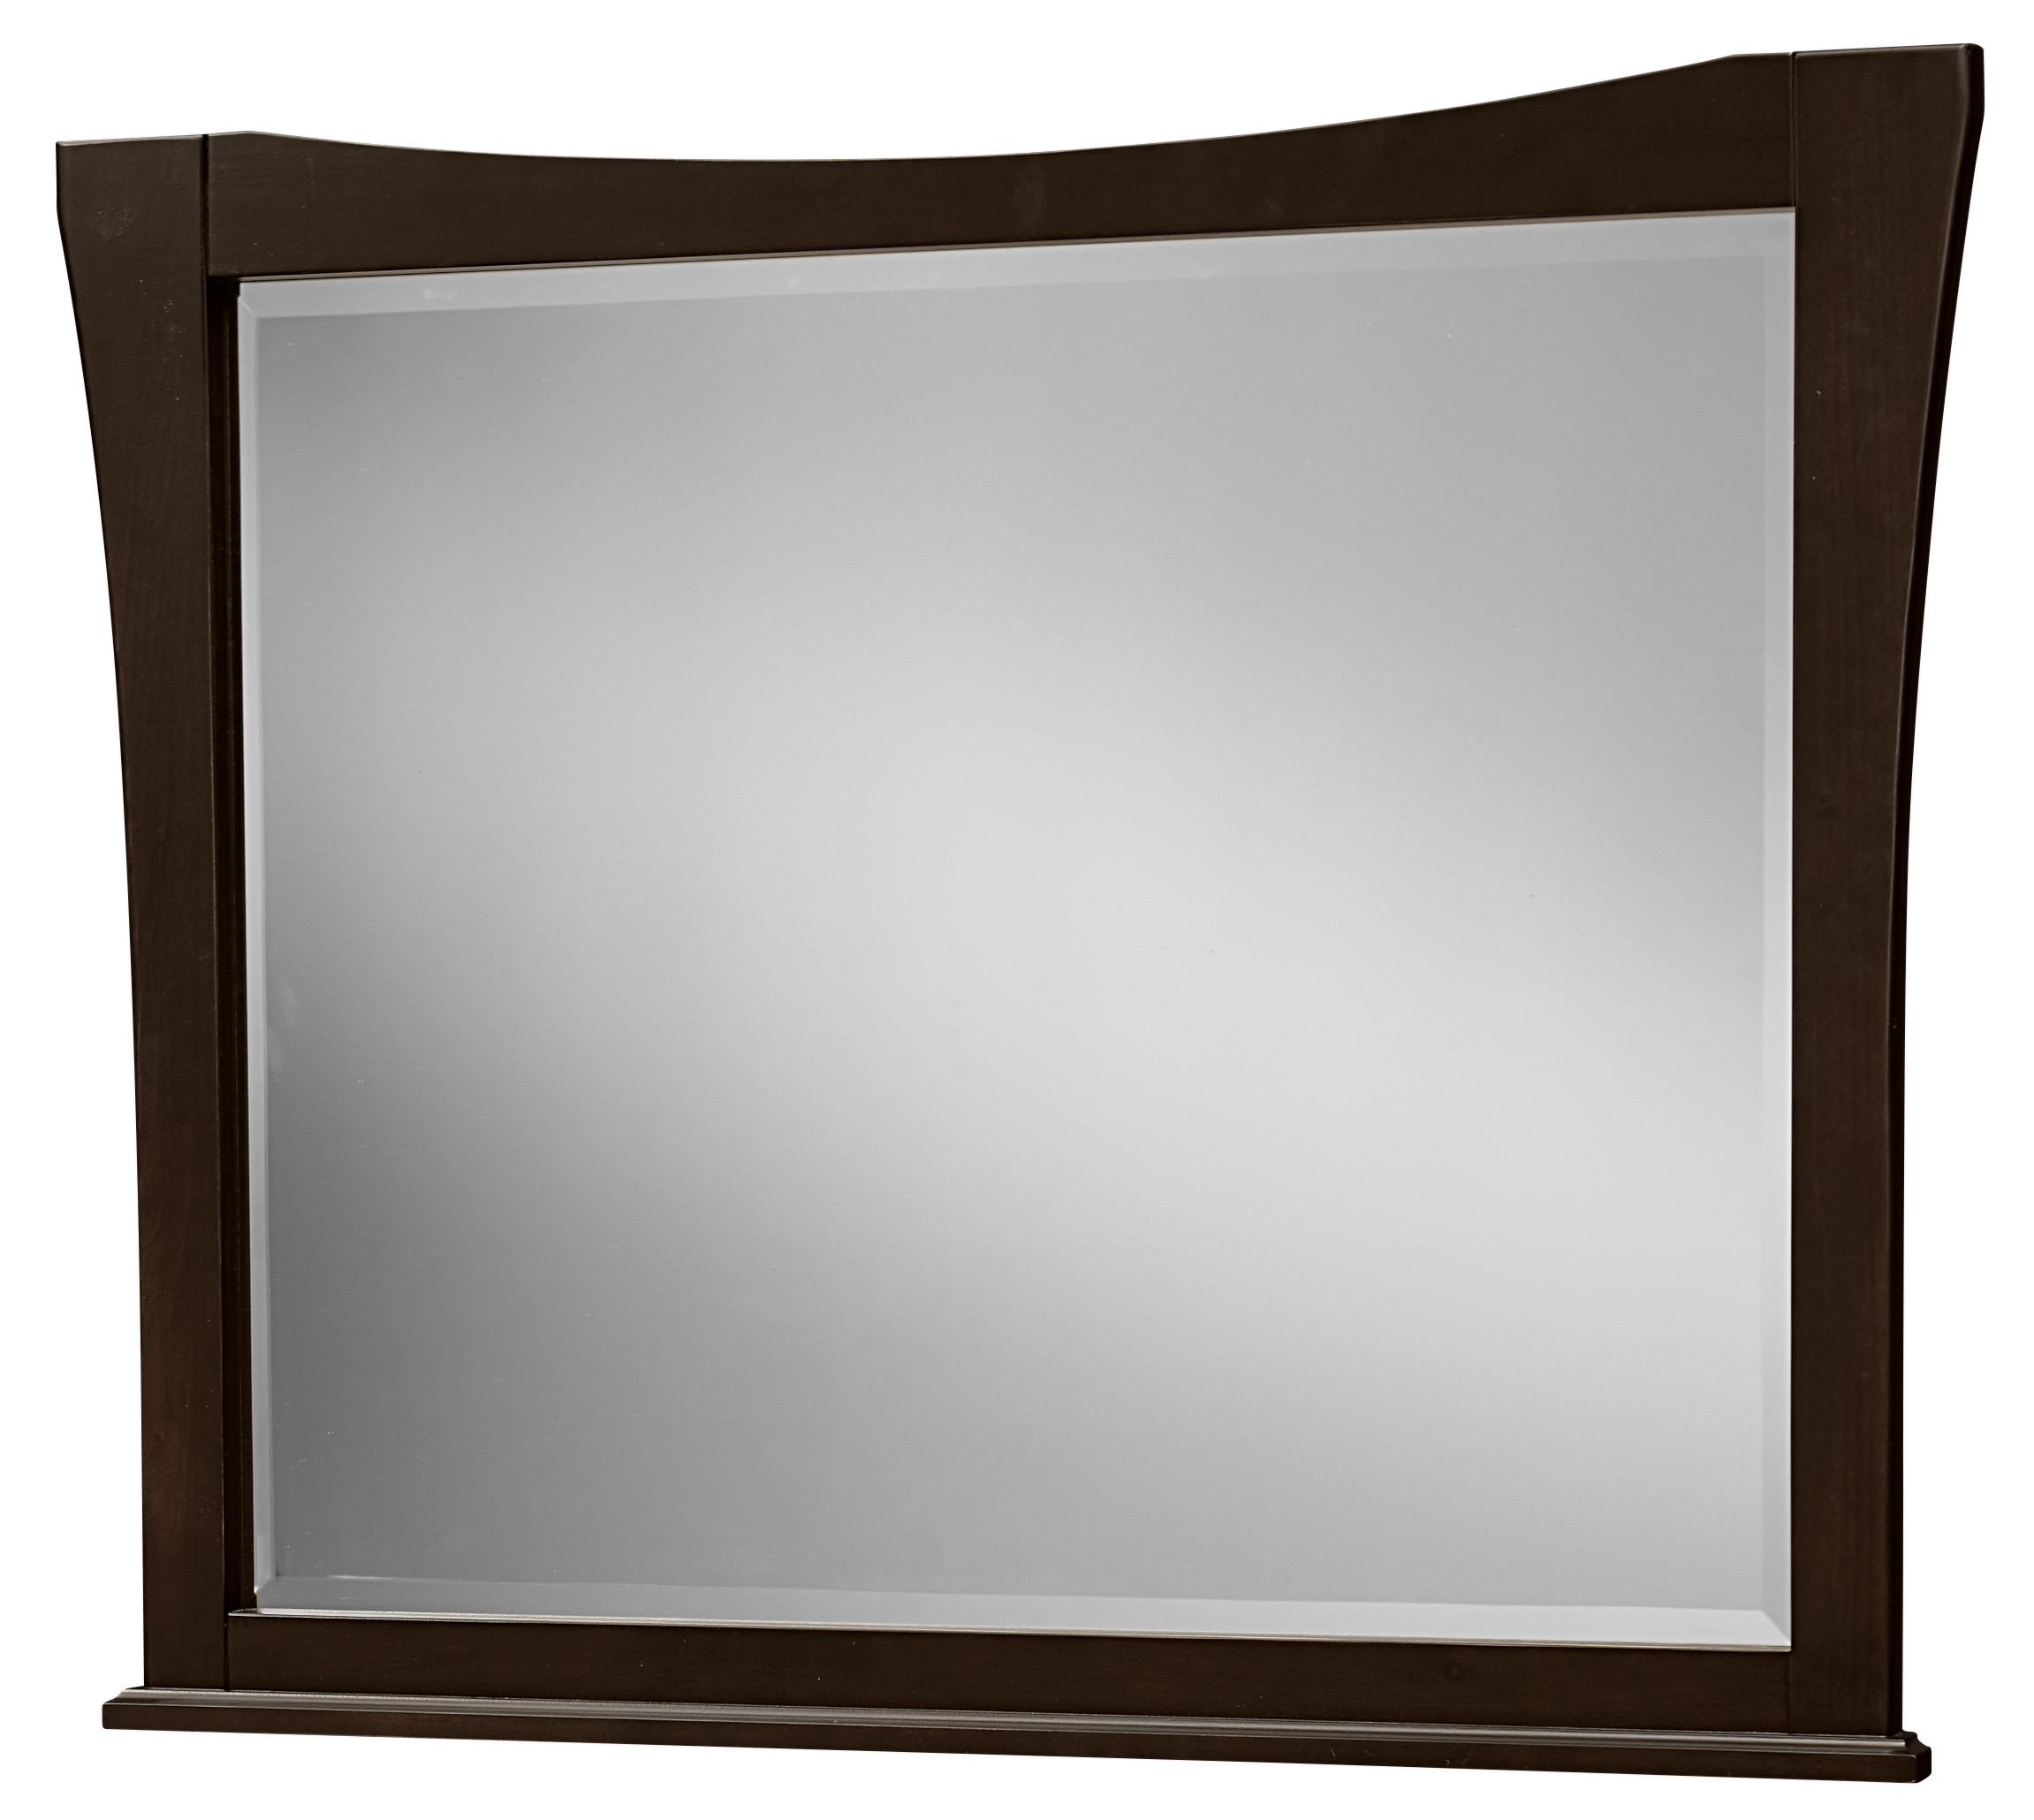 Vaughan Bassett Commentary Large Wing Mirror - Item Number: 390-446